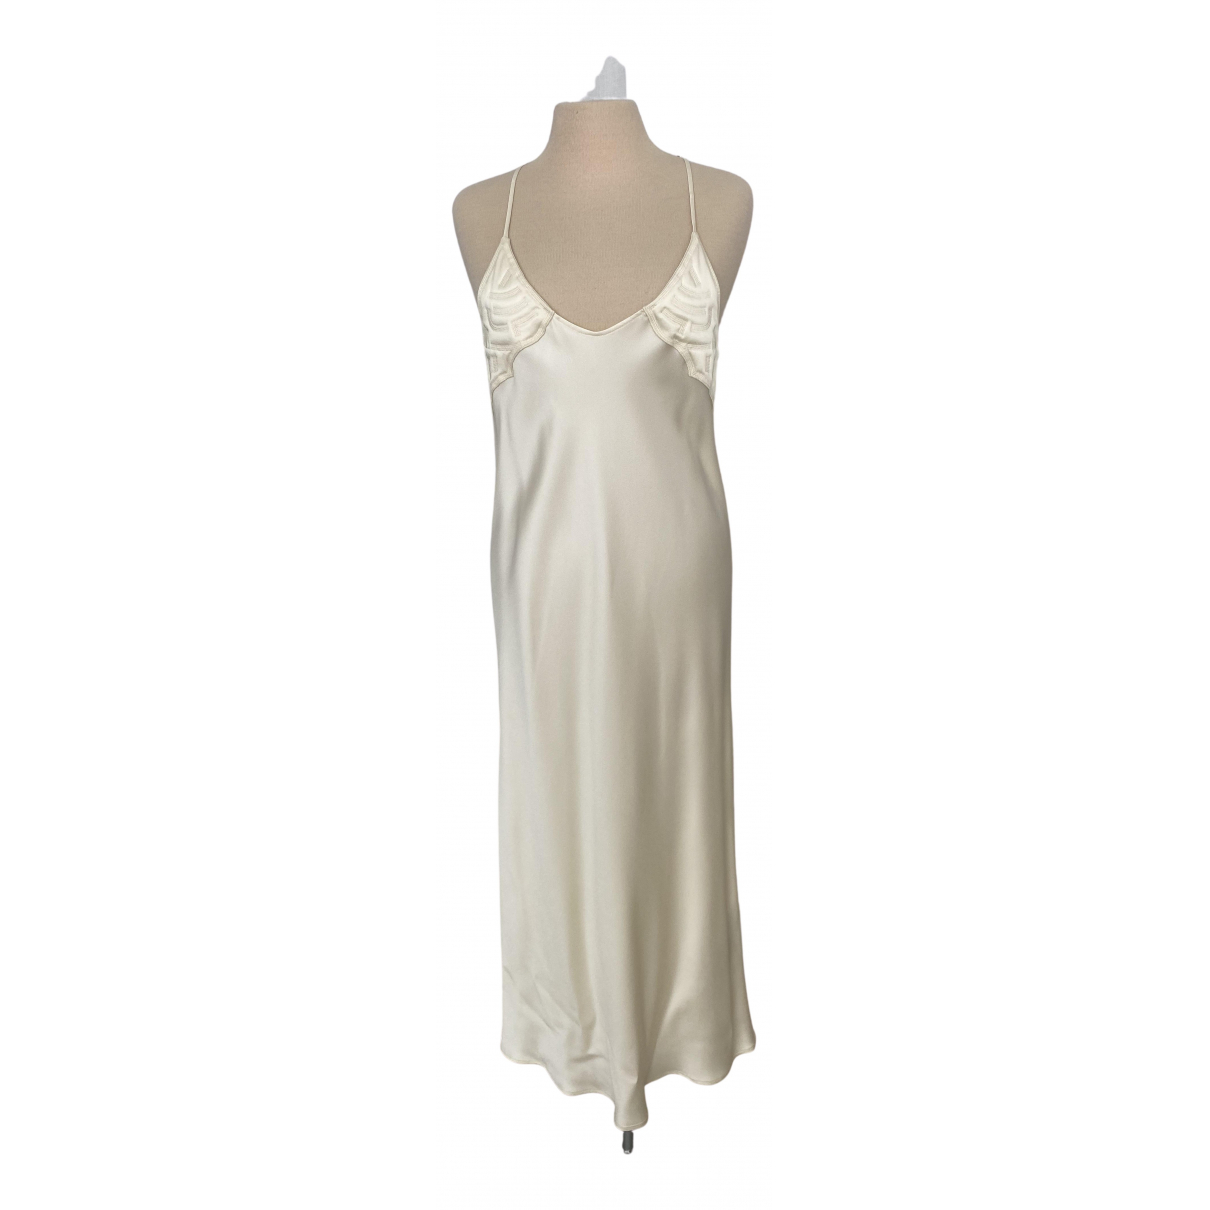 Dorothee Schumacher N Ecru dress for Women 2 0-5